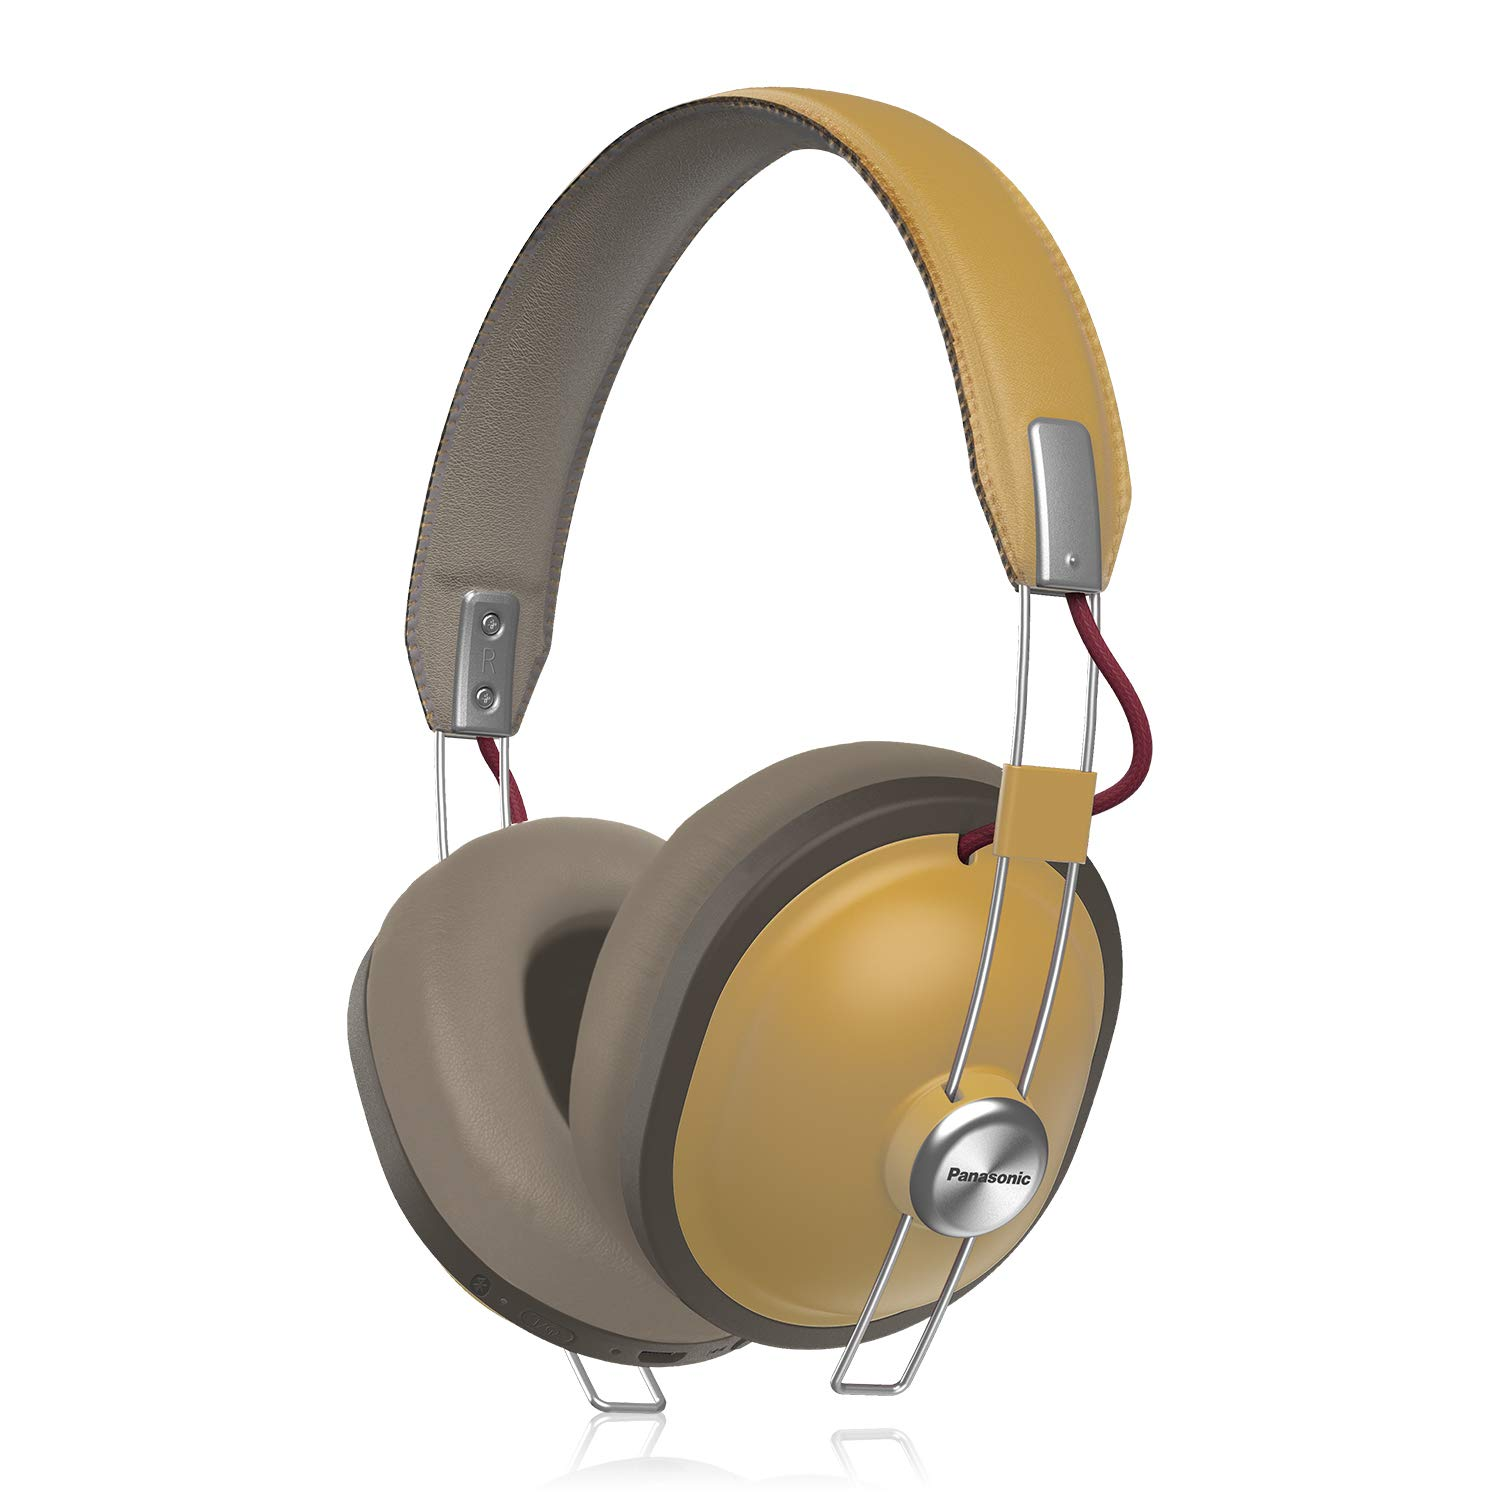 b8f6381713e3eb Amazon.com: PANASONIC Retro Wireless Headphones with Bluetooth connectivity  and up to 24-Hour Playback - RP-HTX80B-C - Over the Ear Headphones (Dijon):  ...